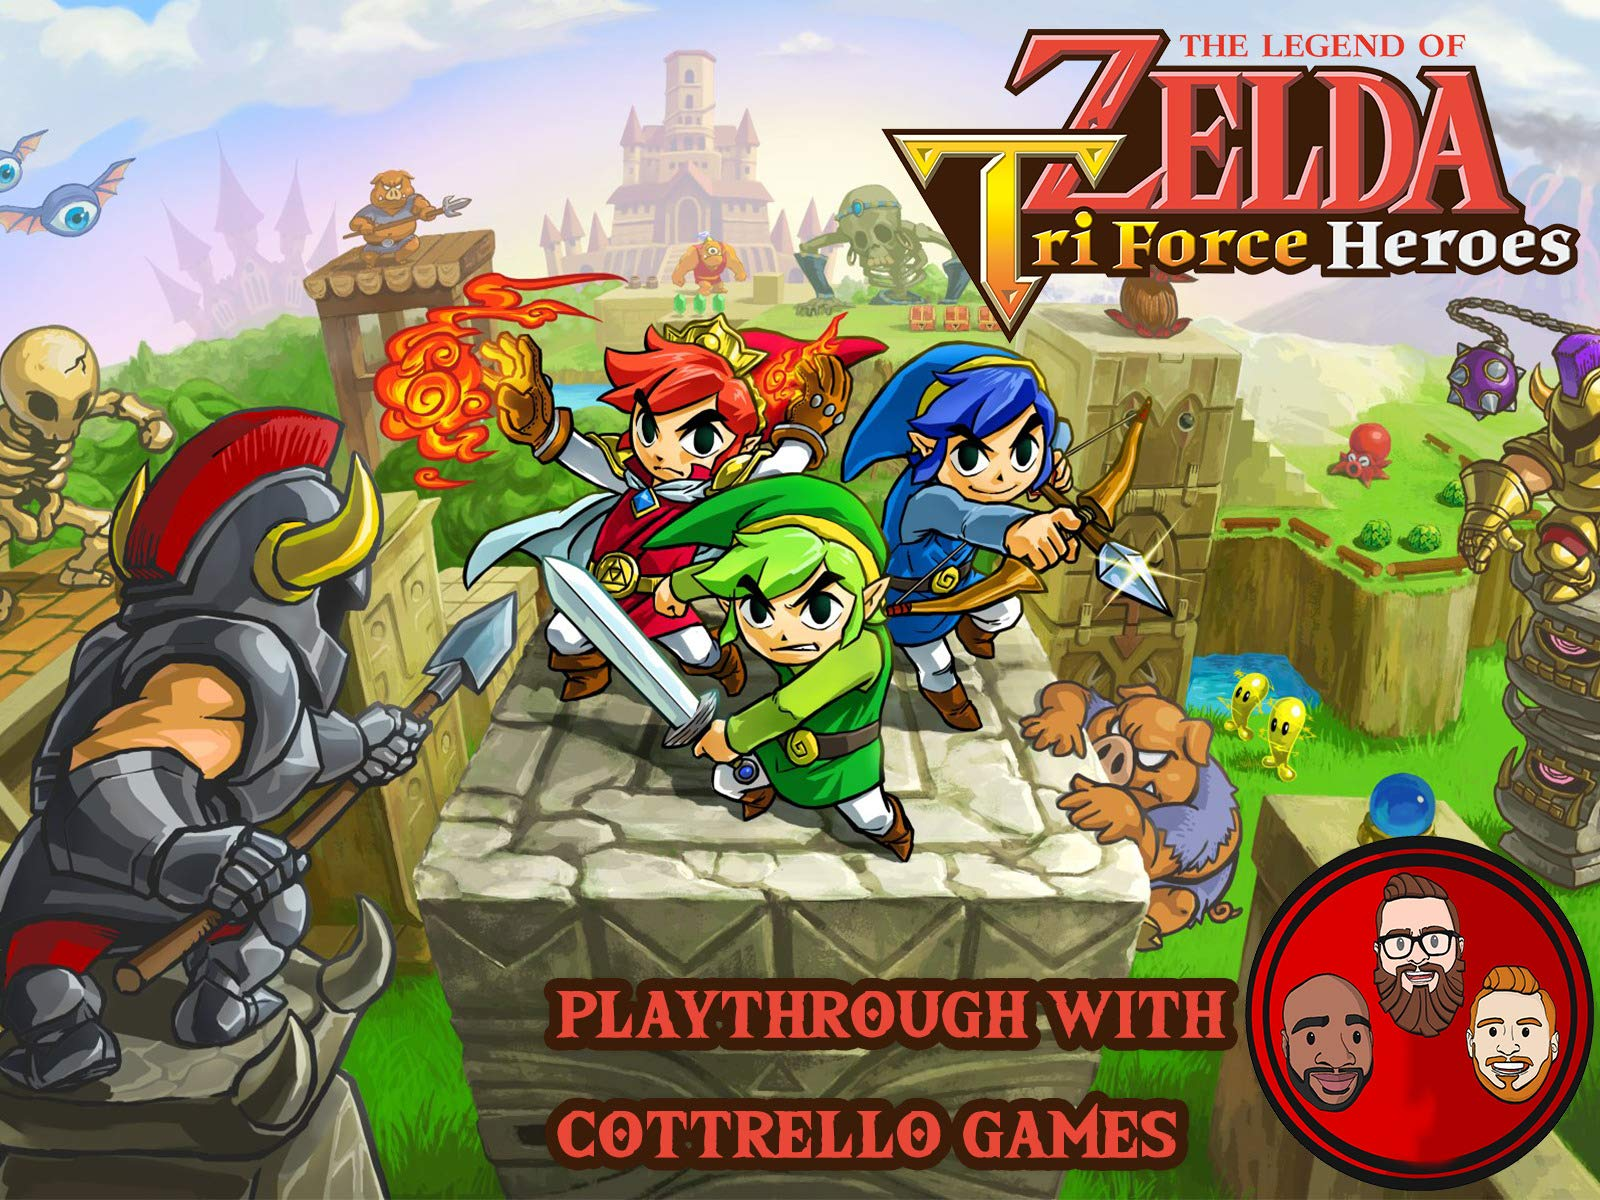 The Legend of Zelda: Tri Force Heroes Playthrough with Cottrello Games - Season 1